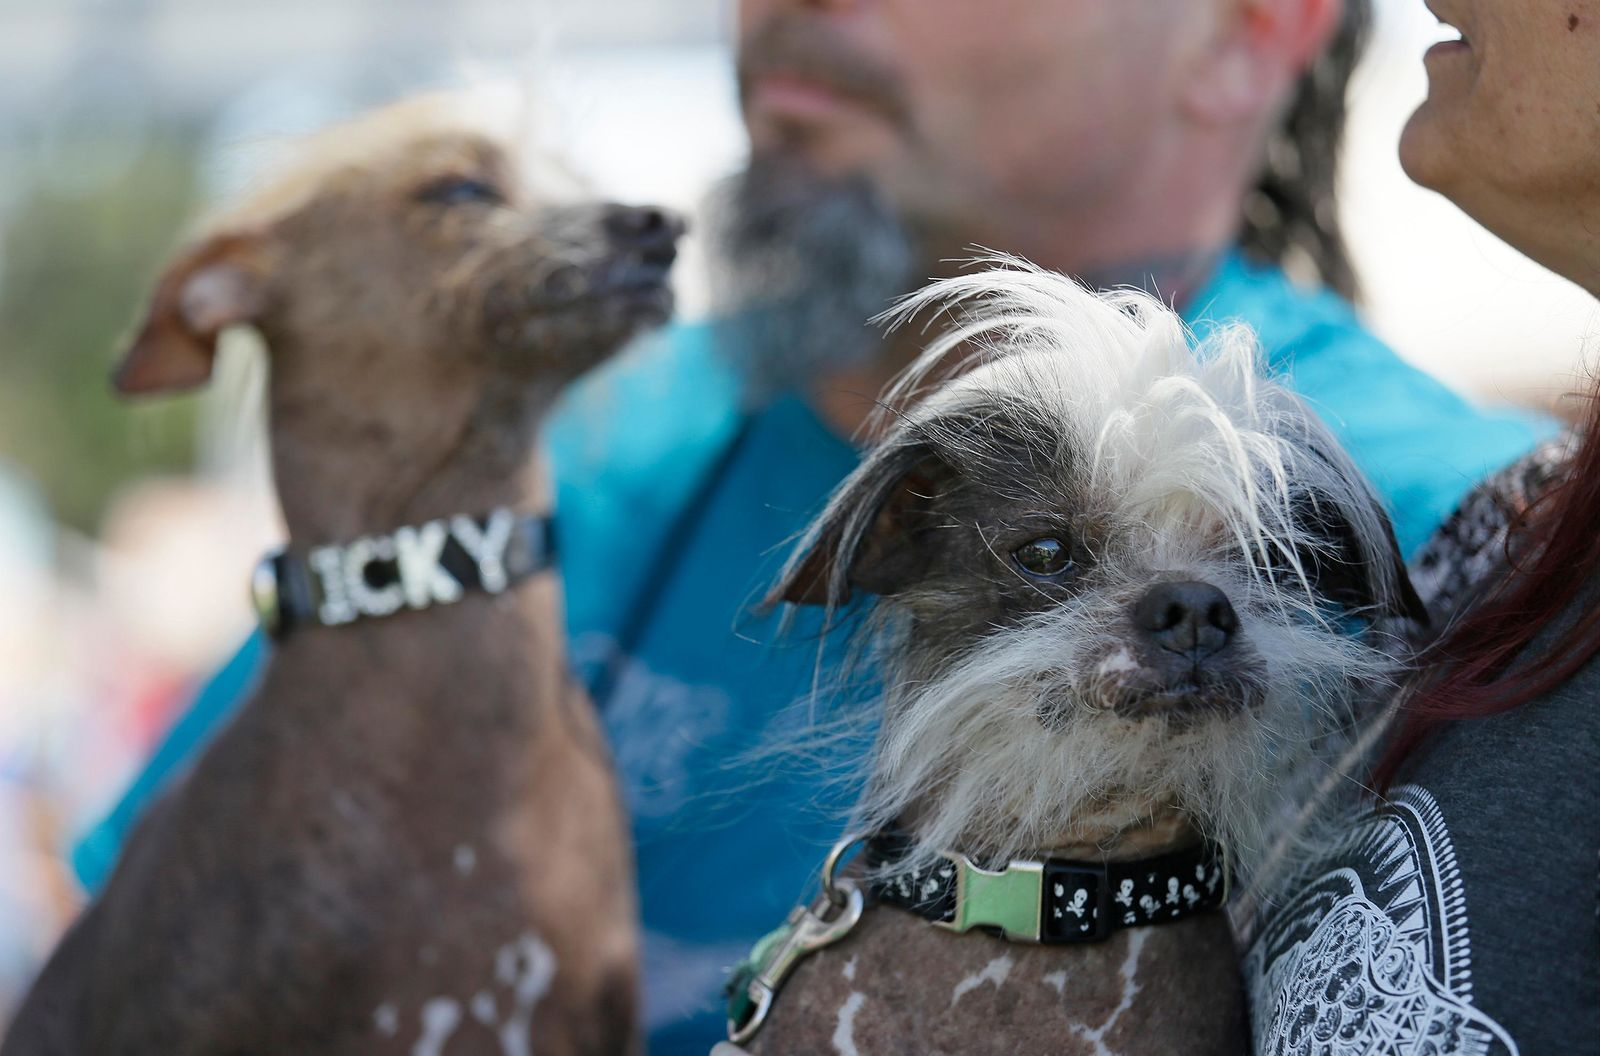 Icky, left, an unknown hairless, and Zoomer, right, a Chinese crested, both from Davis, Calif., wait to compete in the World's Ugliest Dog Contest at the Sonoma-Marin Fair Friday, June 23, 2017, in Petaluma, Calif. (AP Photo/Eric Risberg)